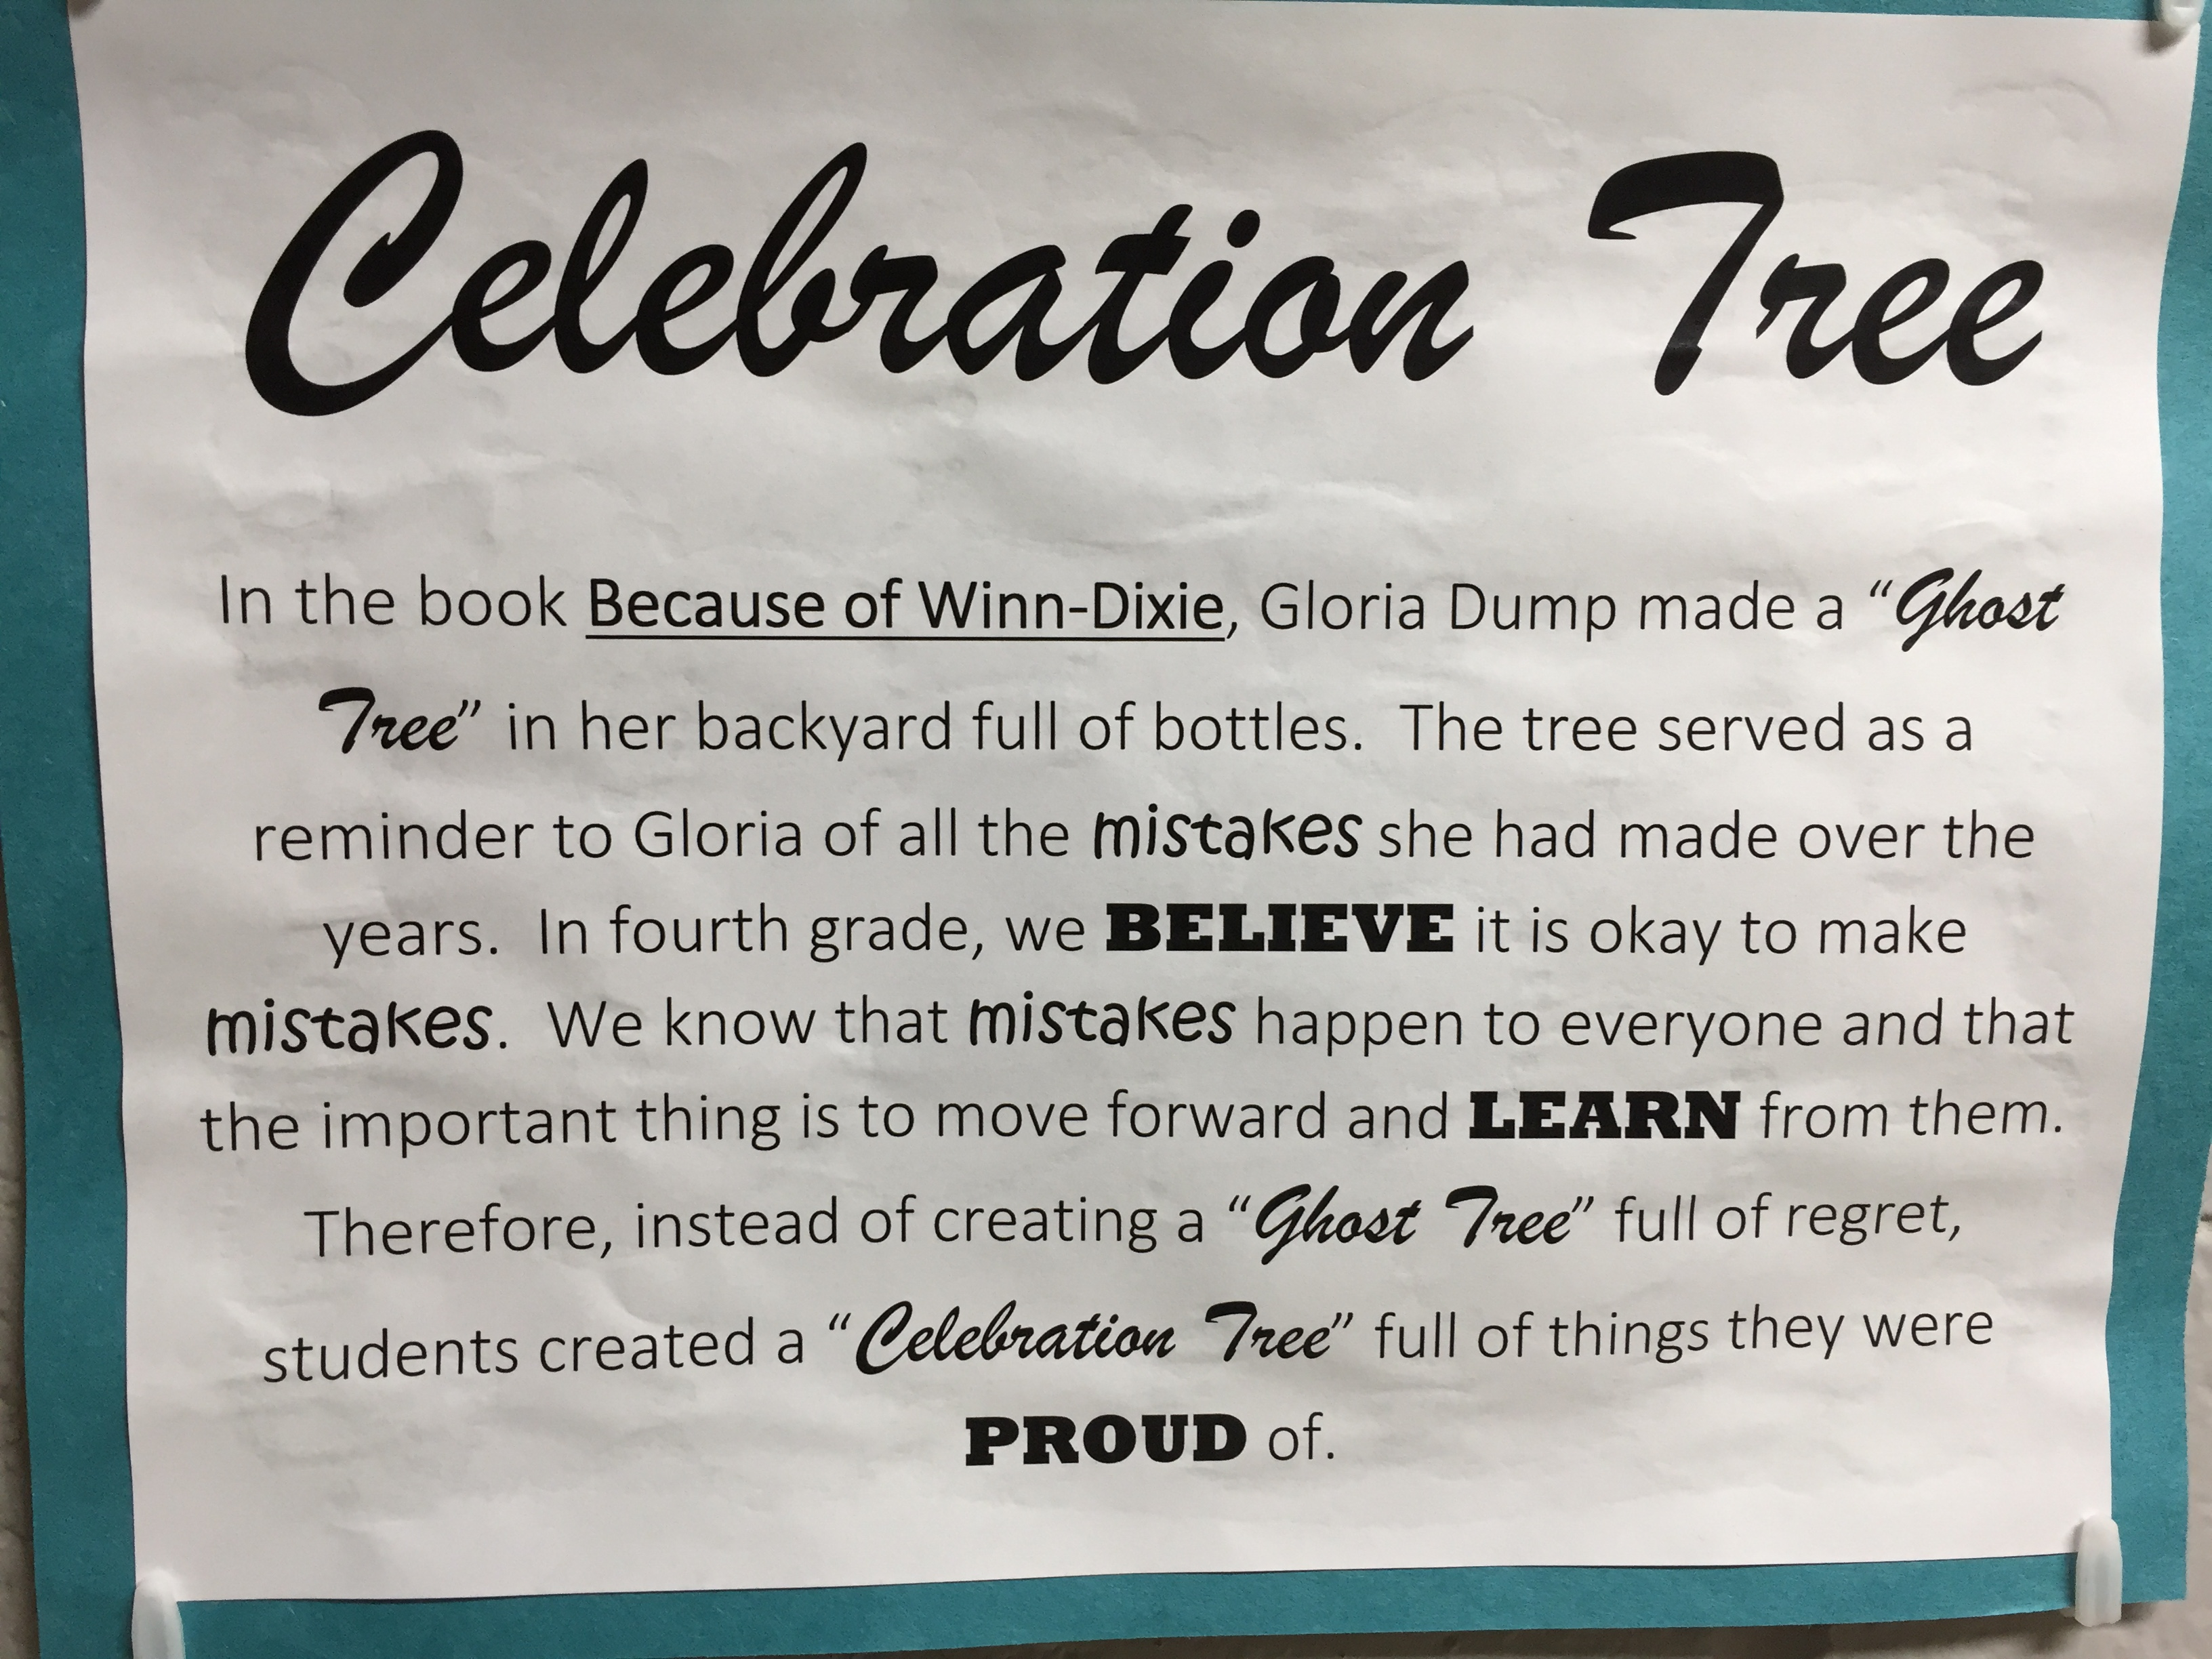 In 4th grade, we choose to learn from our mistakes and celebrate our accomplishments.